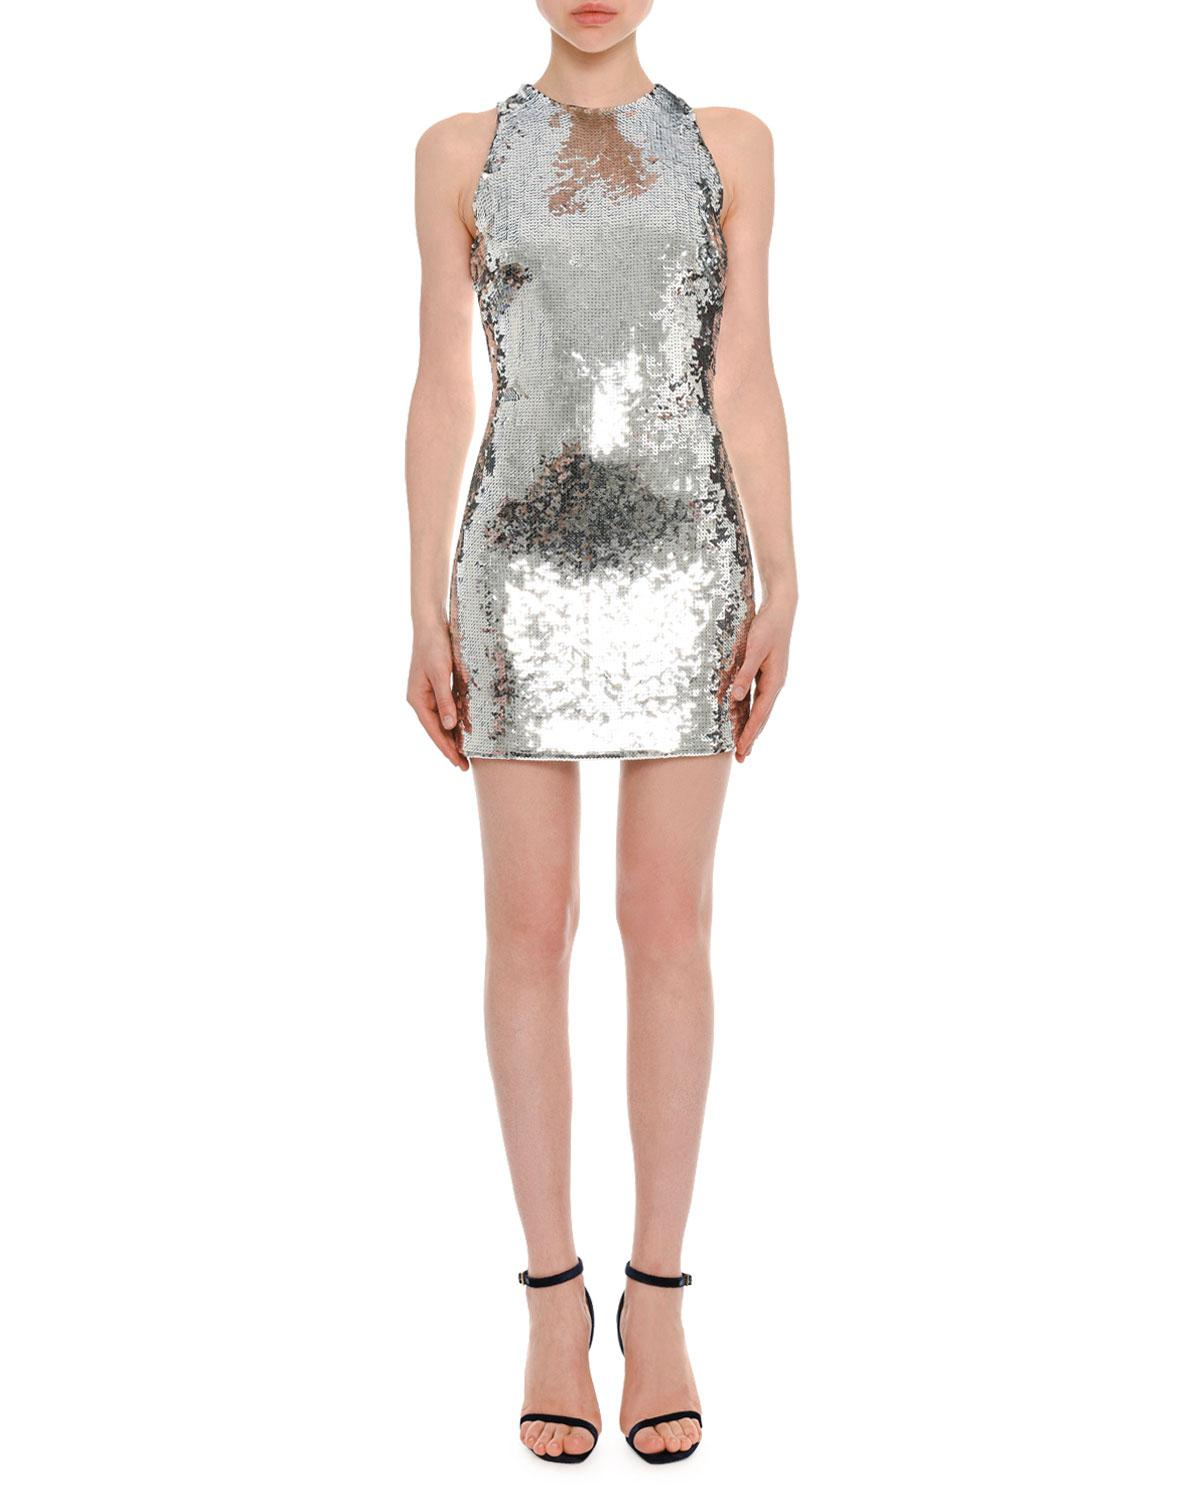 5ead18421f3 Versace High-neck Sleeveless Sequined Mini Cocktail Dress in ...